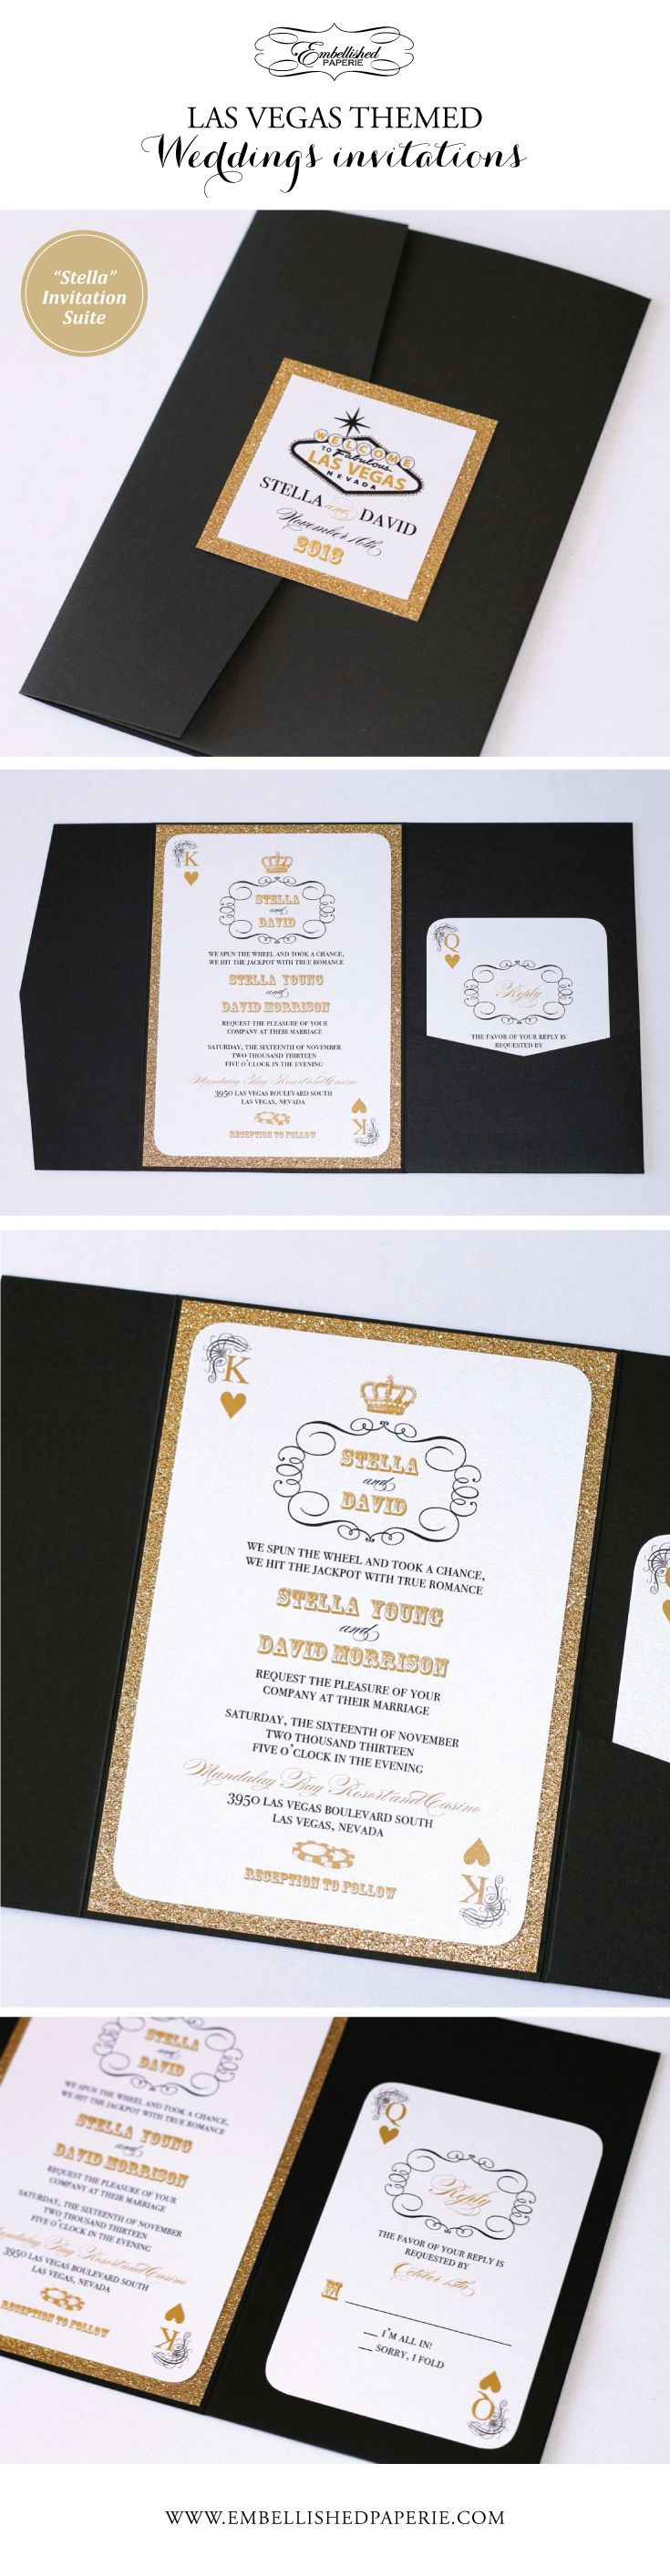 invitation letter for us vissample wedding%0A Las Vegas Wedding Invitations in Black  White and Gold Glitter  Pocket fold  style invitation